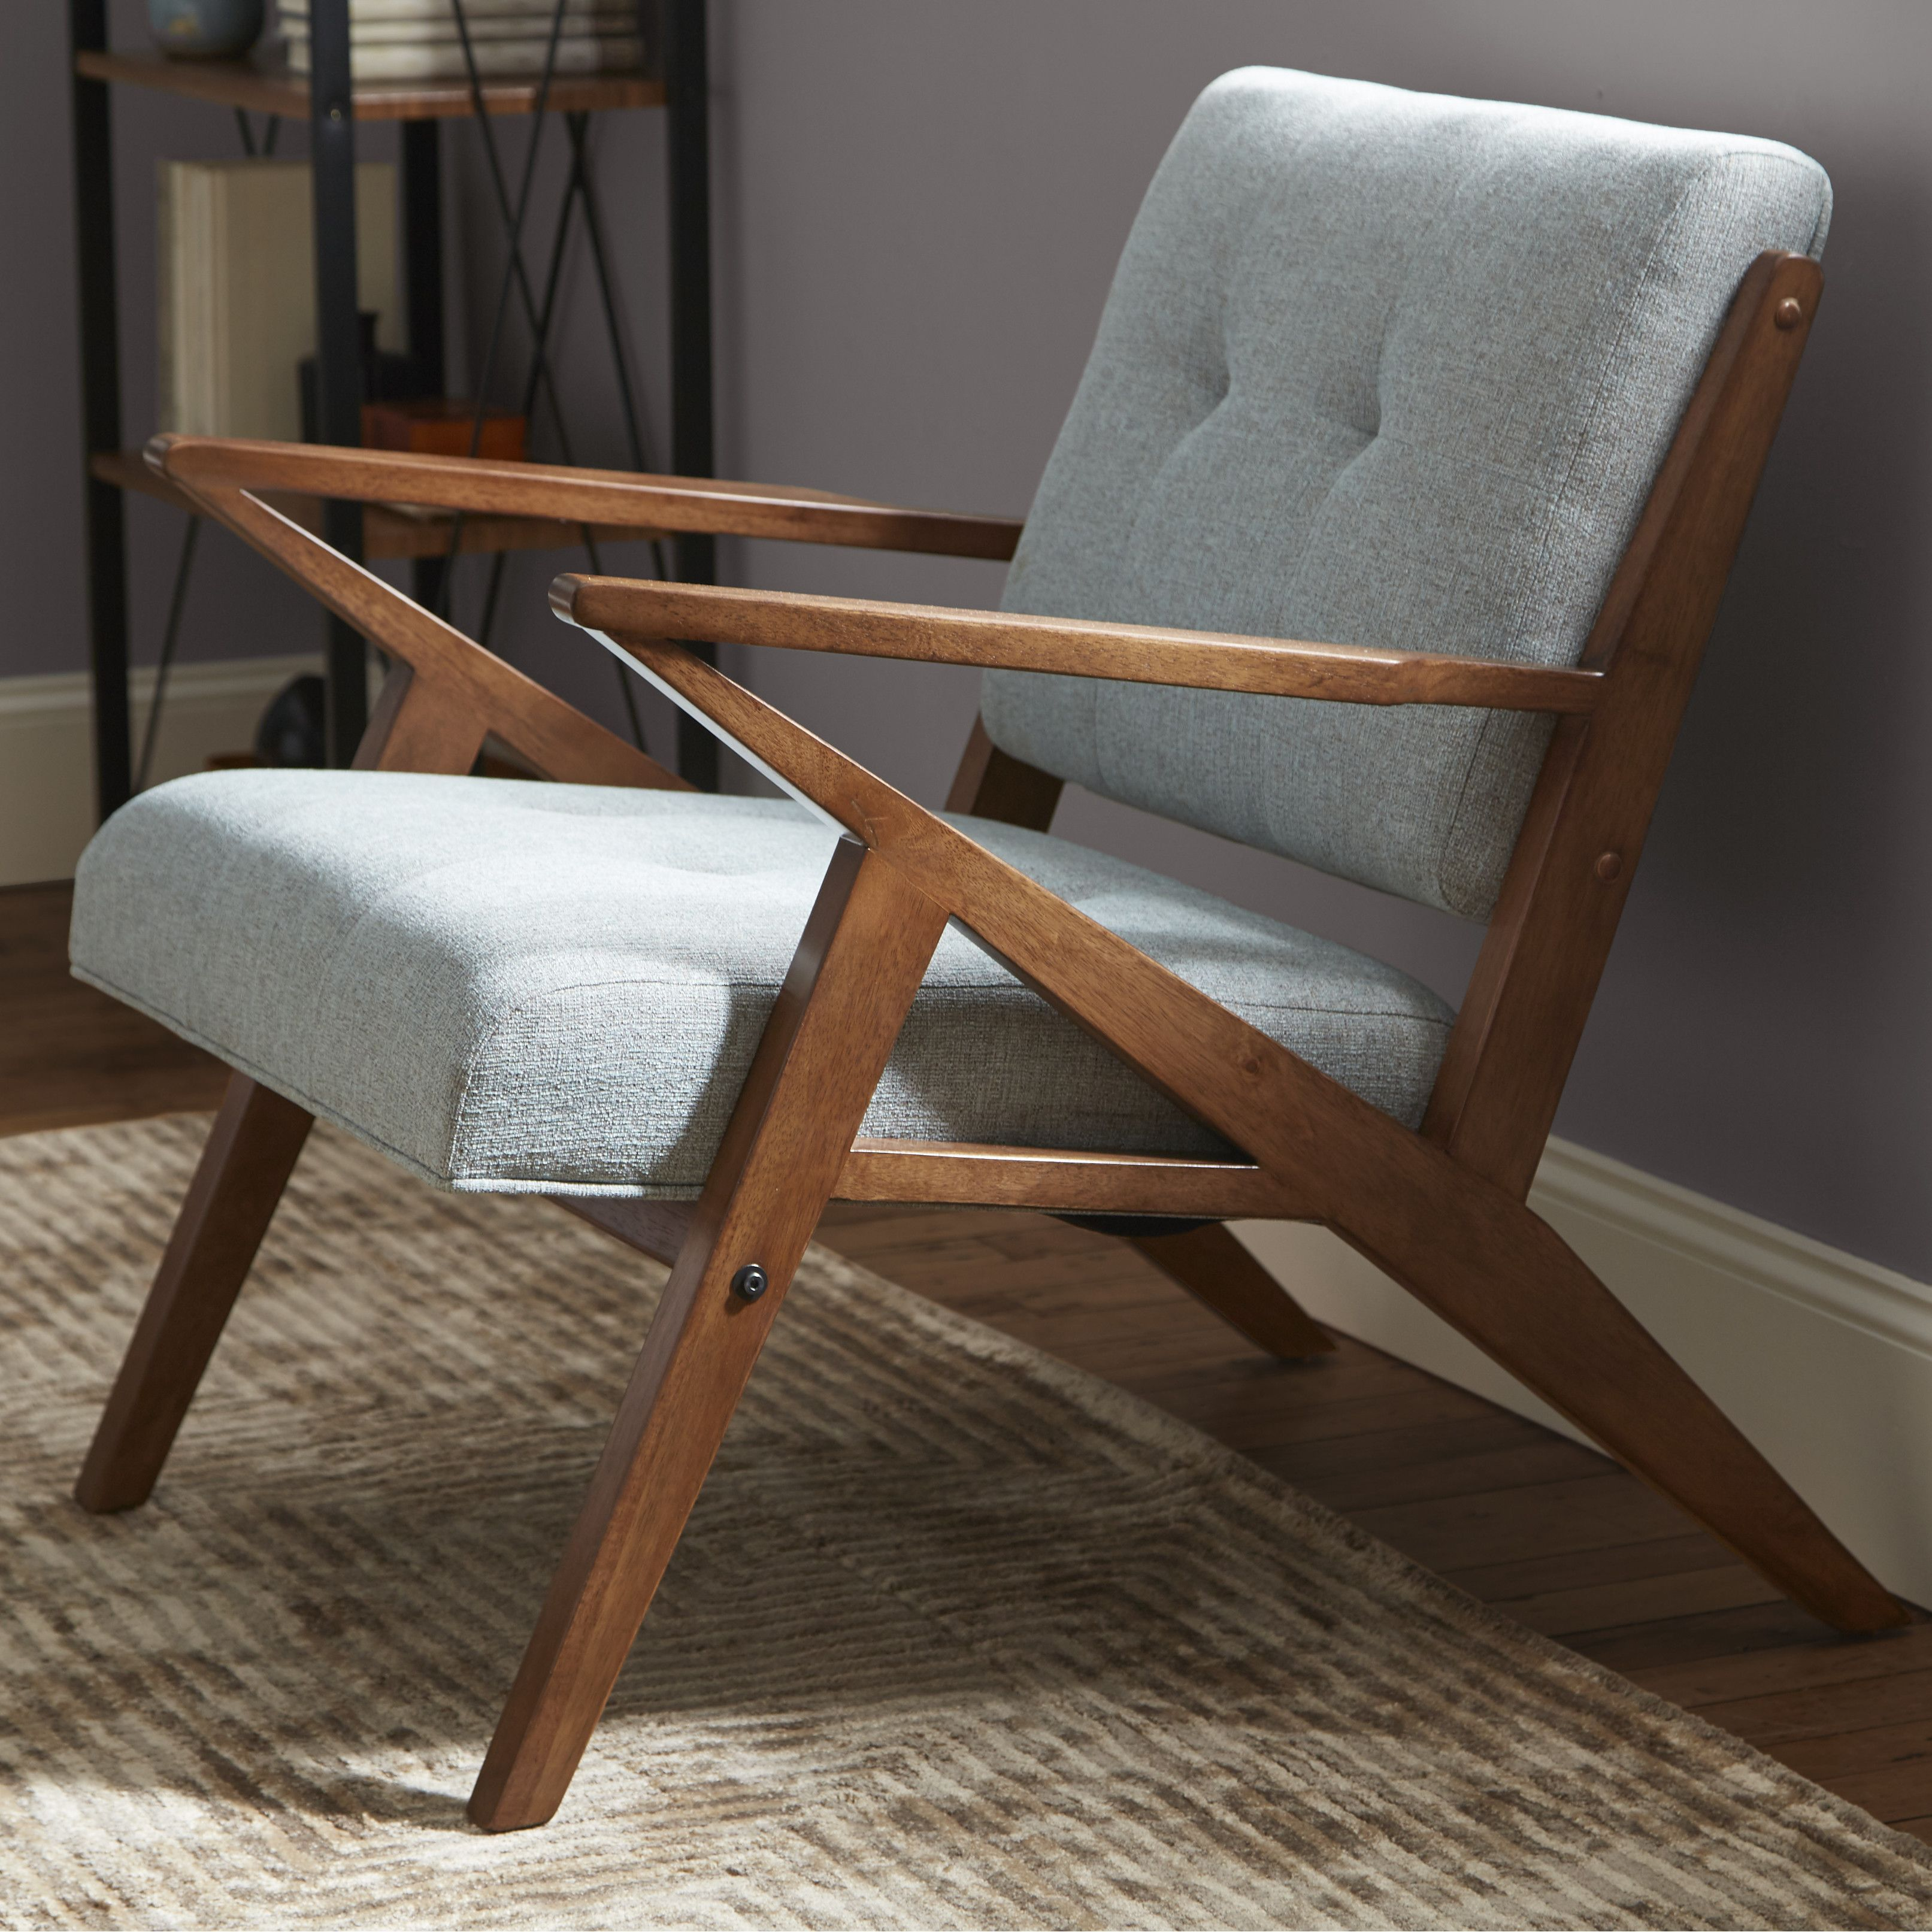 Ink Ivy Rocket Lounge Chair Amp Reviews Wayfair Small Lounge Chairs Wood Chair Design Wayfair Living Room Chairs